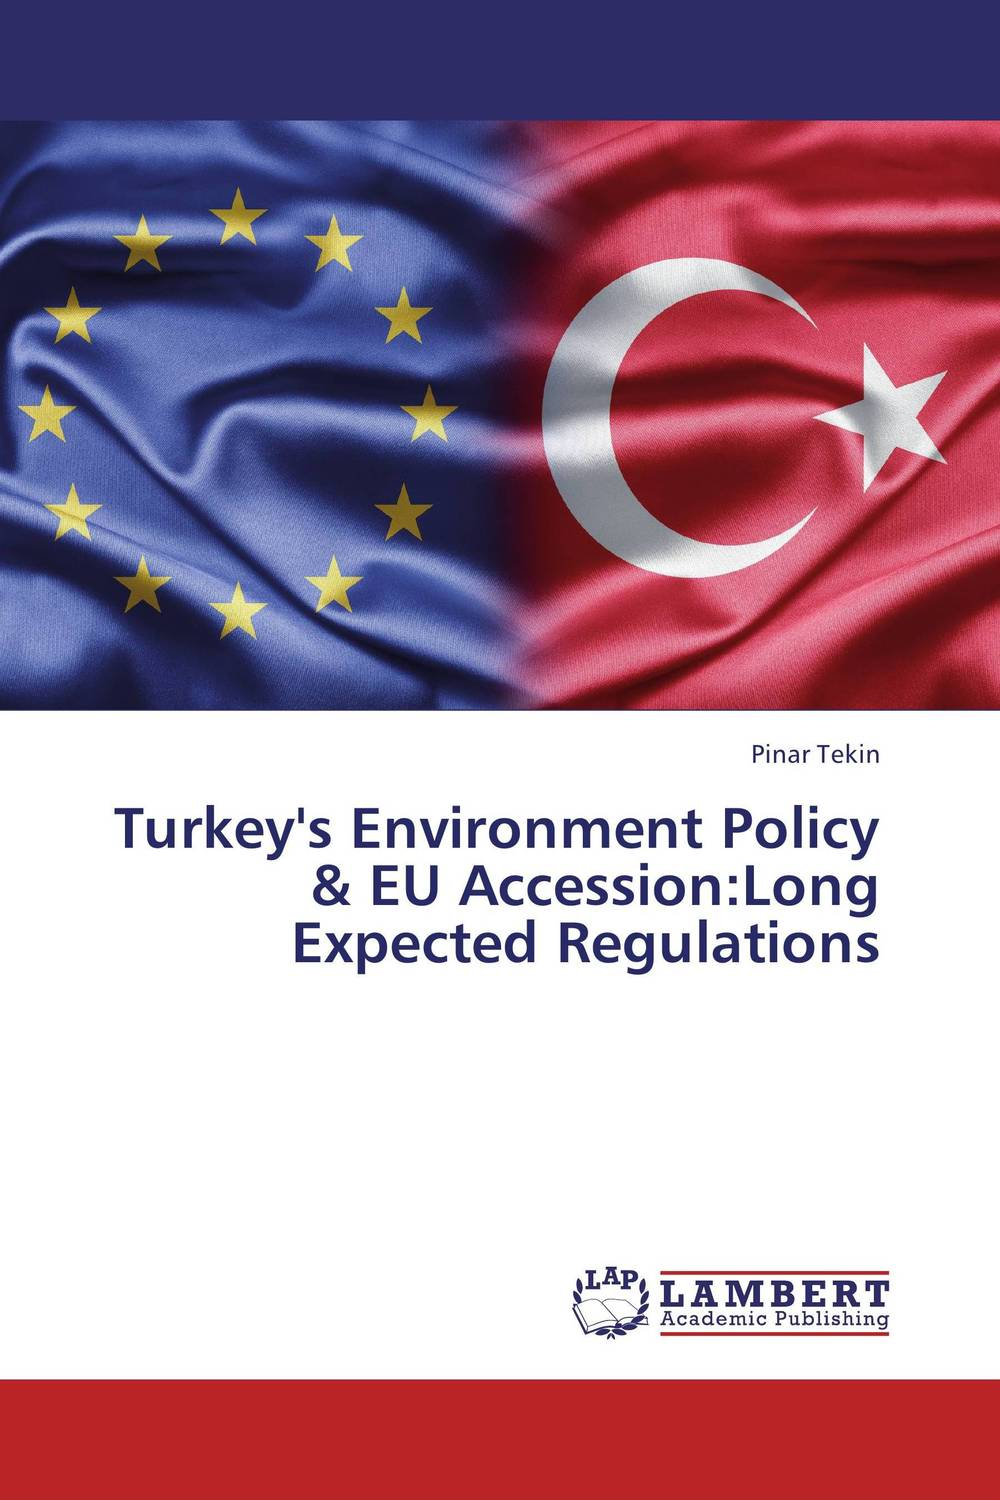 Turkey's Environment Policy & EU Accession:Long Expected Regulations